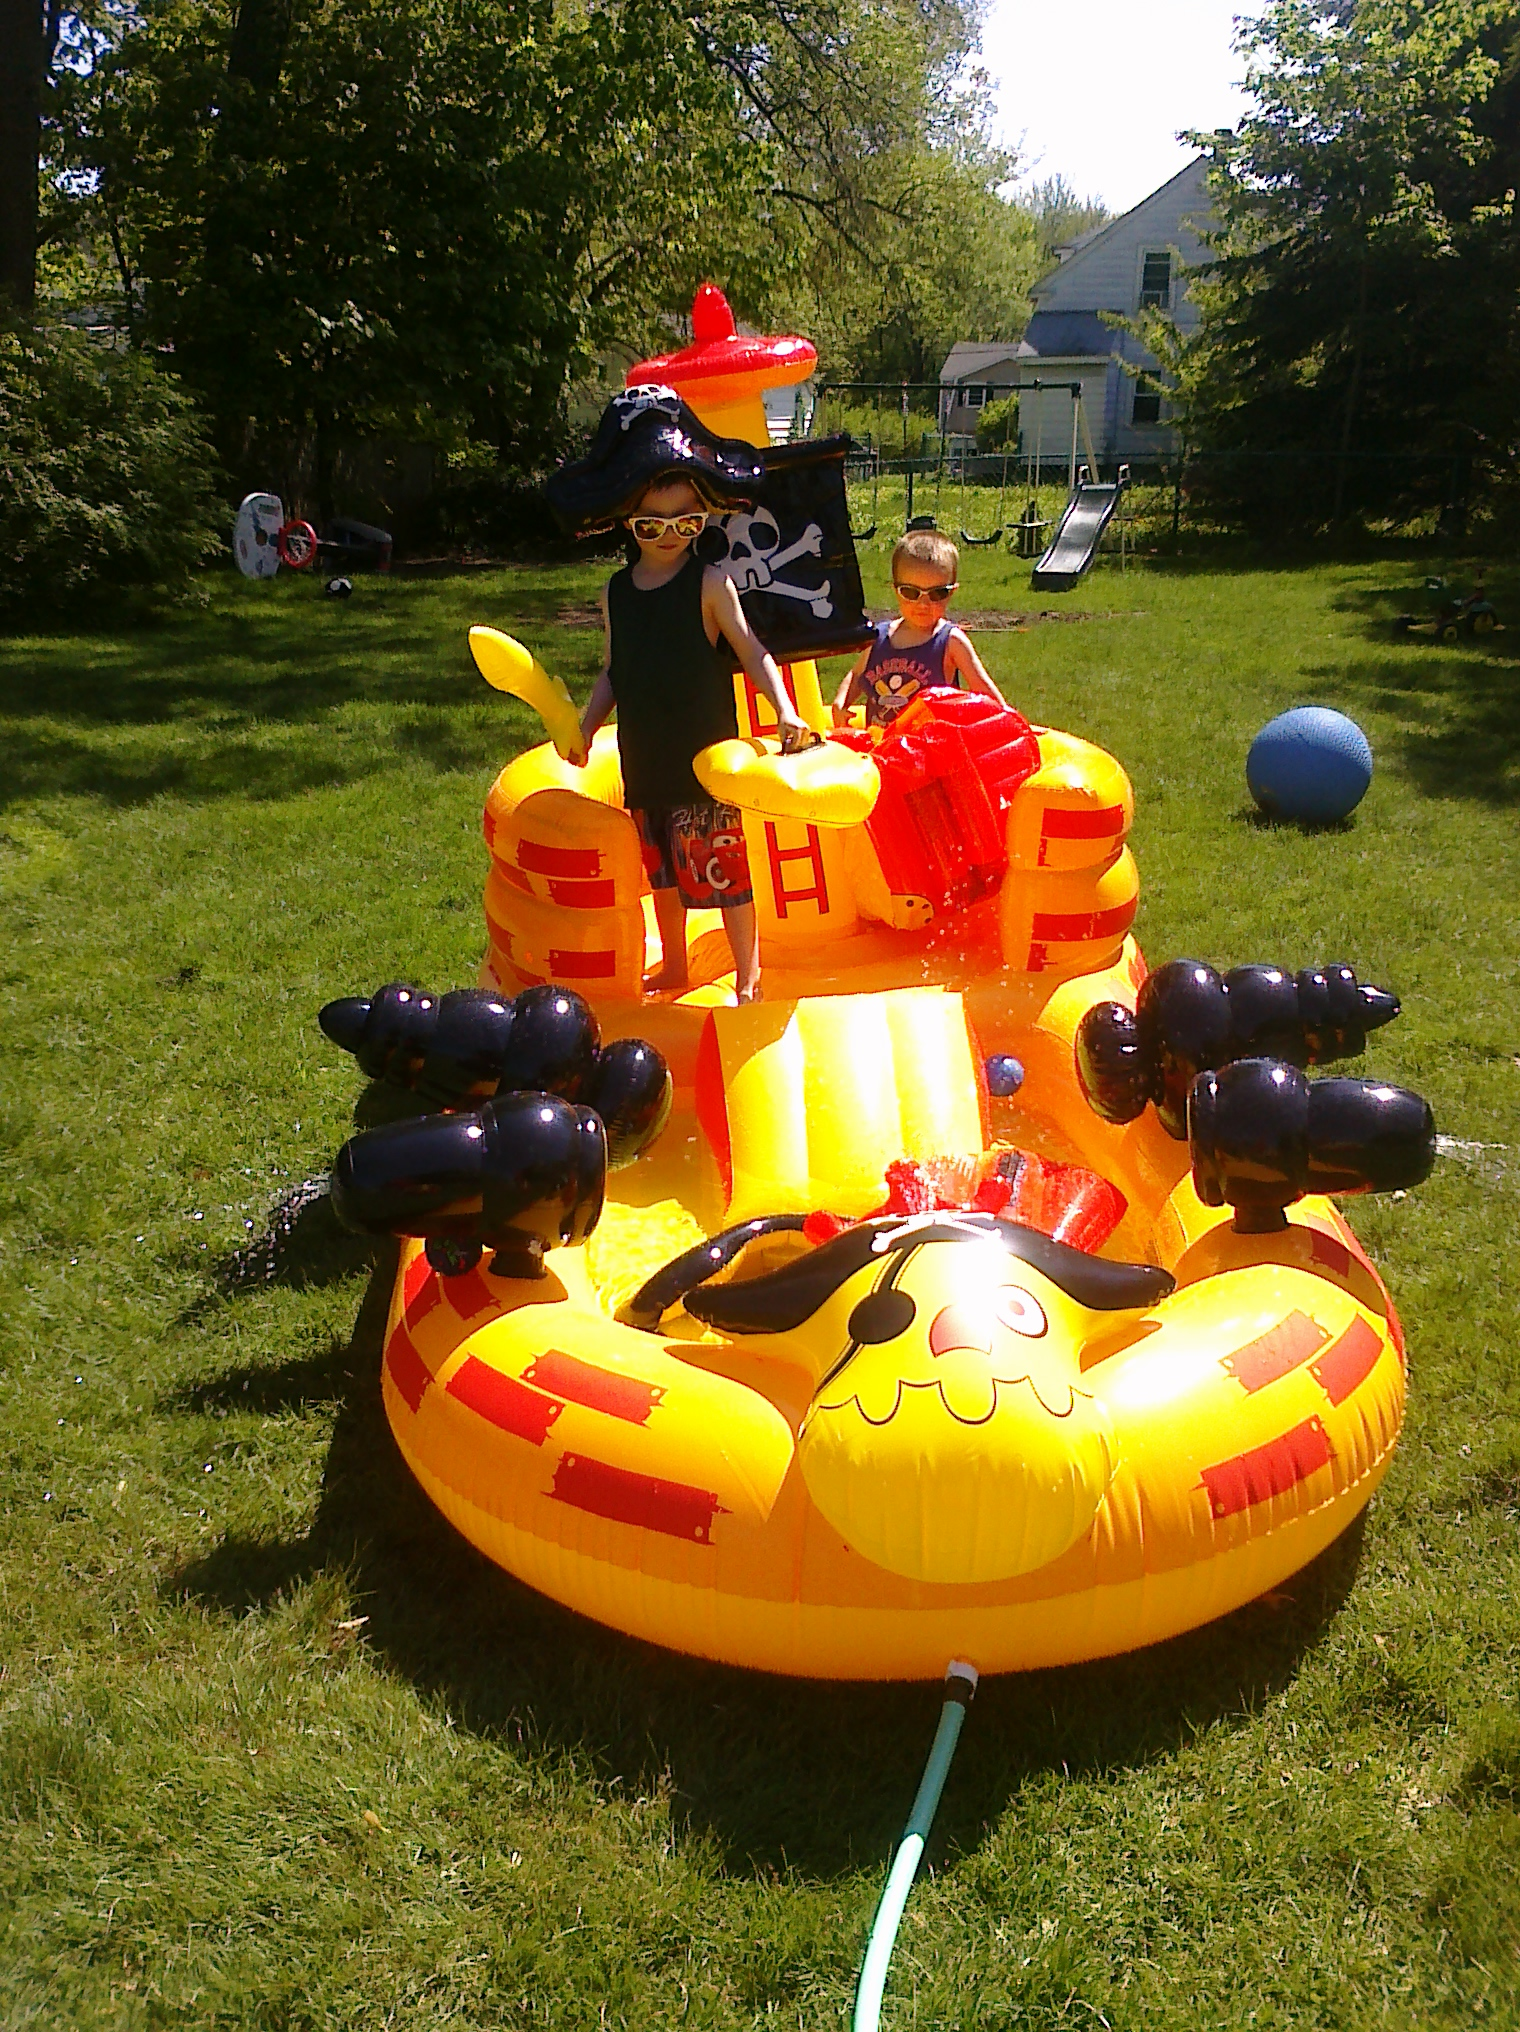 Pirate ship pool the zimmer zoo - Inflatable pirate ship swimming pool ...